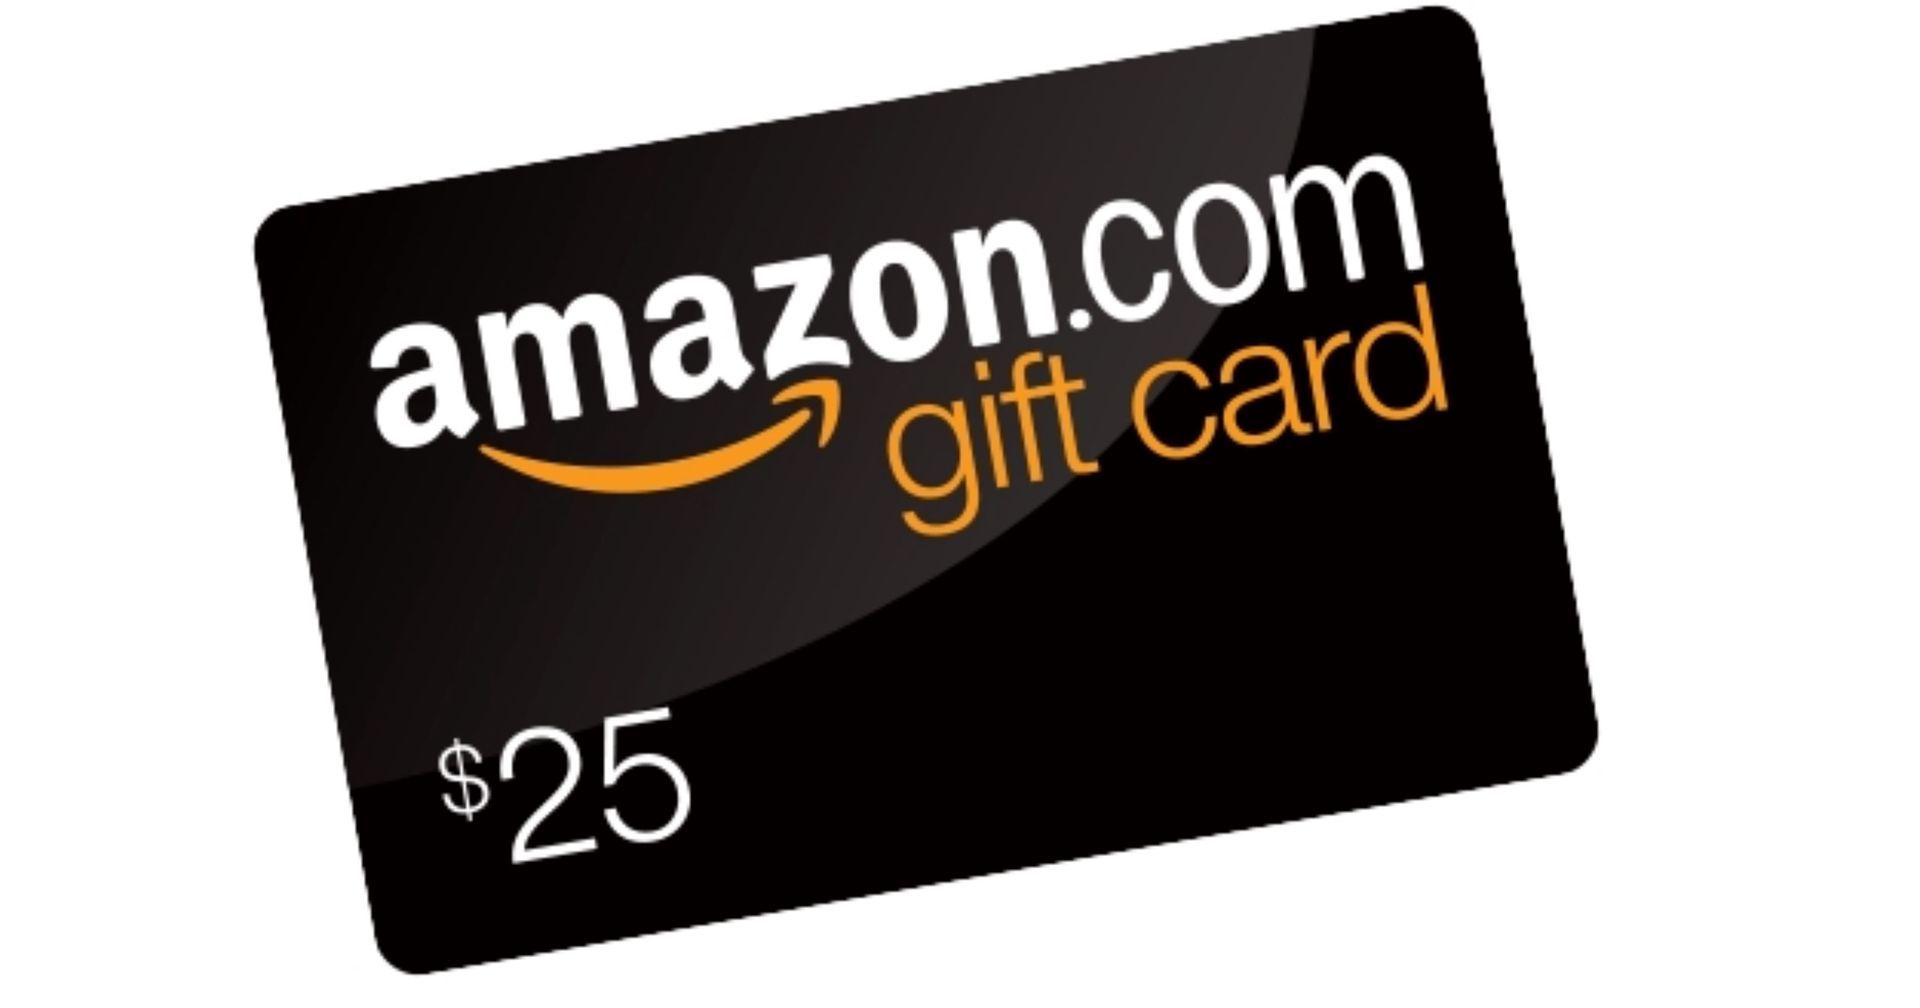 com, you will be entered to win a $25 Amazon gift card!